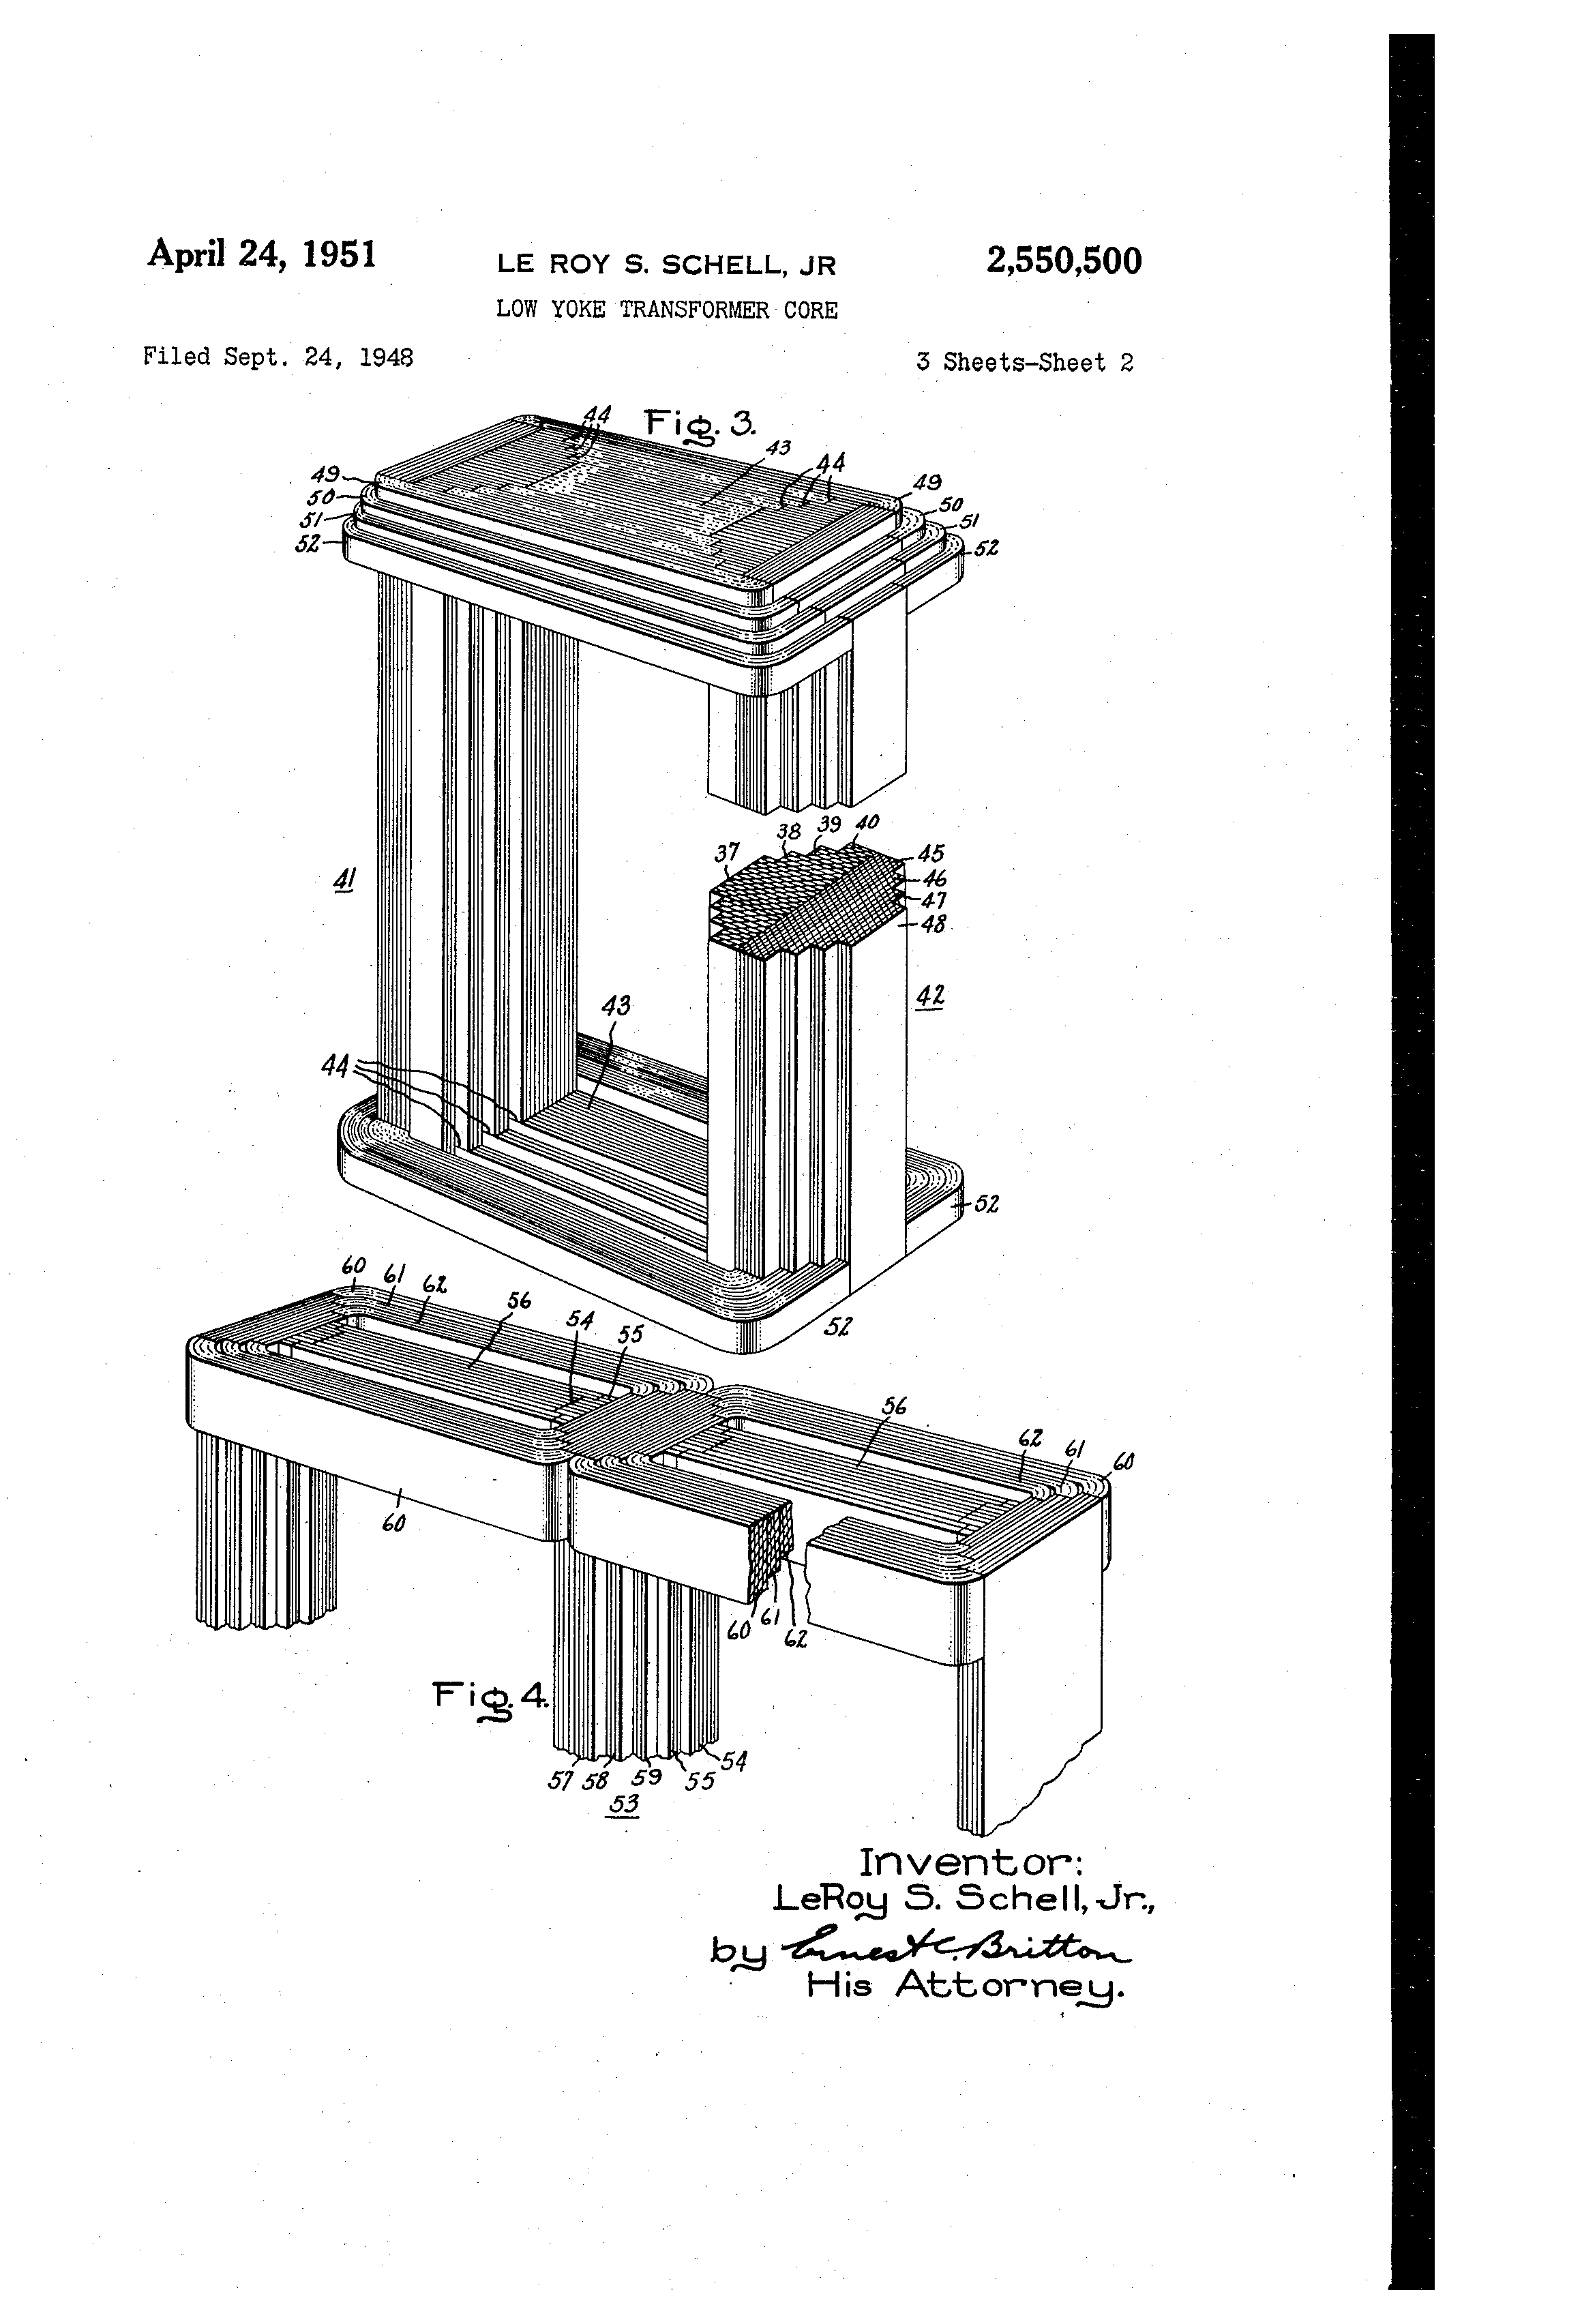 patent us2550500 - low yoke transformer core